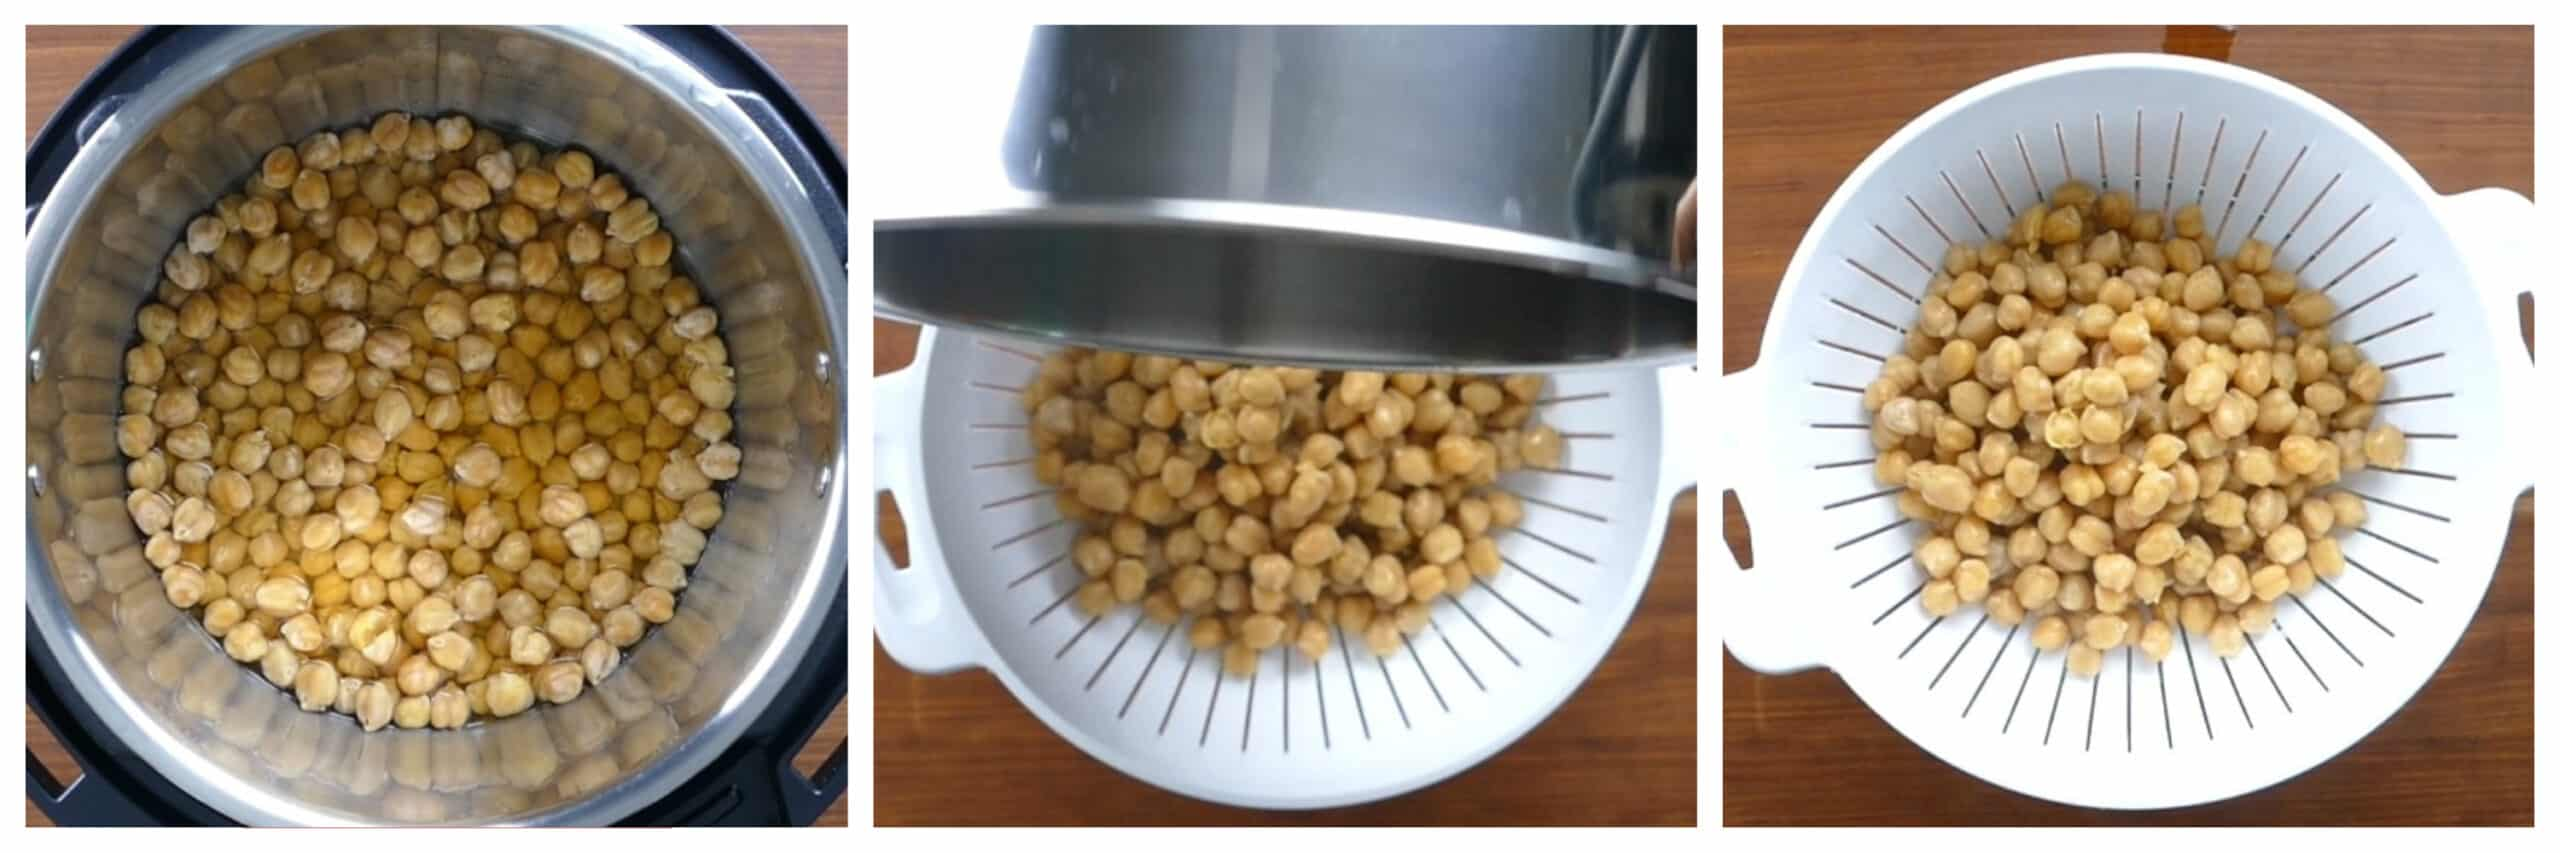 Instant Pot Chickpeas Instructions collage - cooked chickpeas in water, being drained, drained into collander